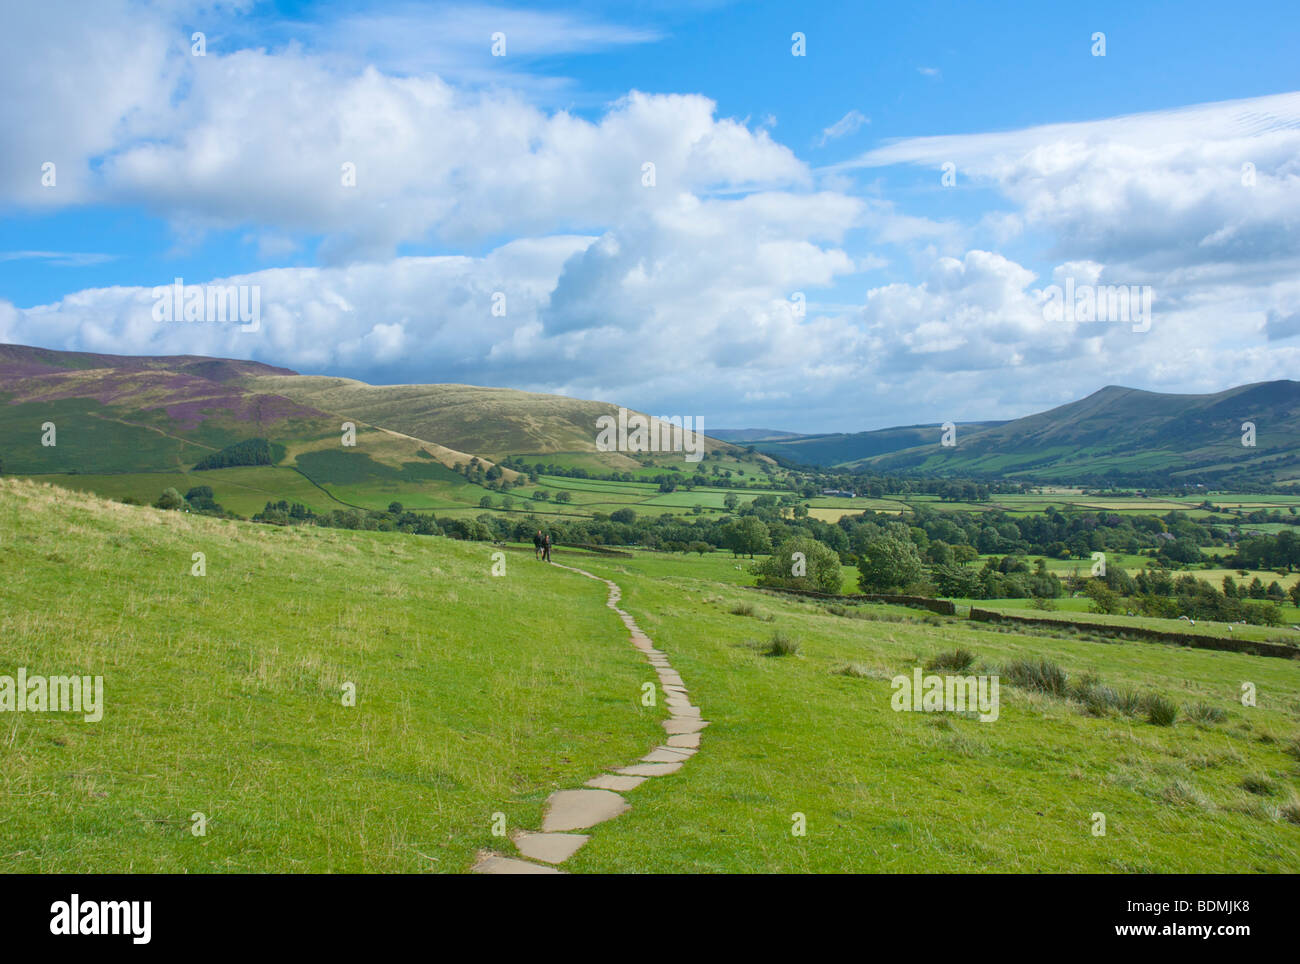 Two walkers on paved Pennine Way between Edale and Upper Booth, Peak National Park, Derbyshire, England UK - Stock Image